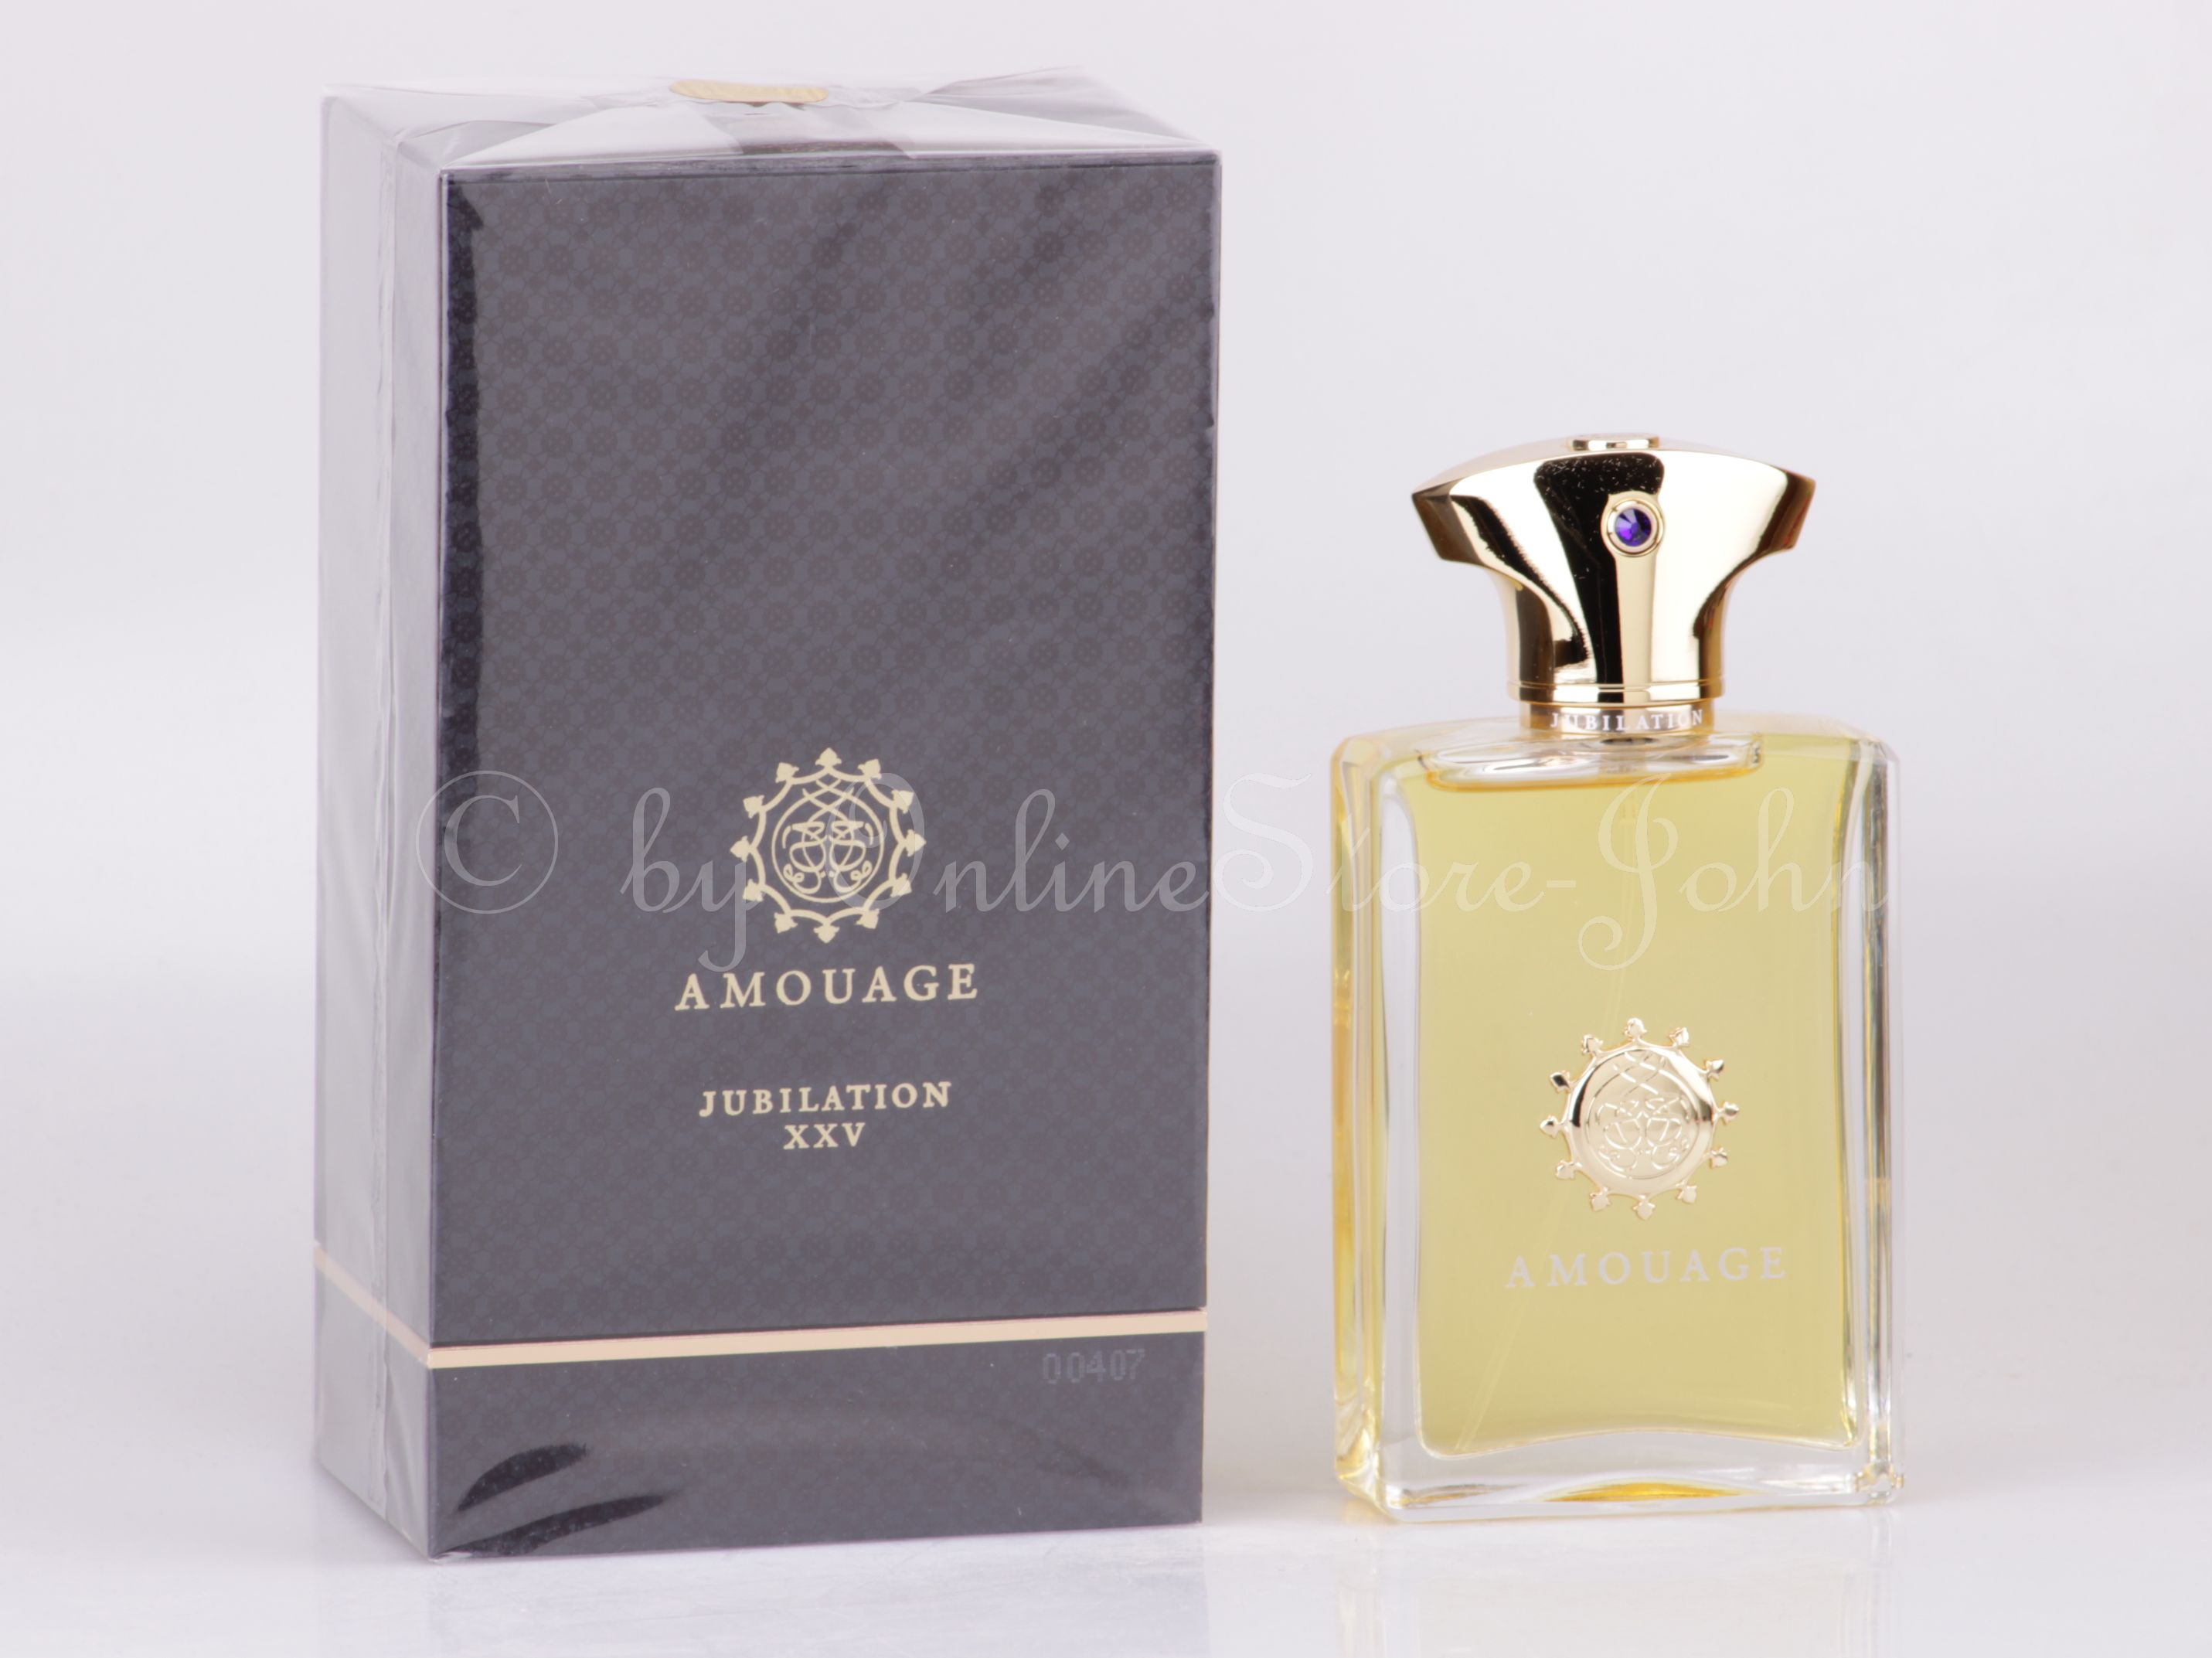 Amouage Jubilation Xxv For Man 100ml Edp Eau De Parfum